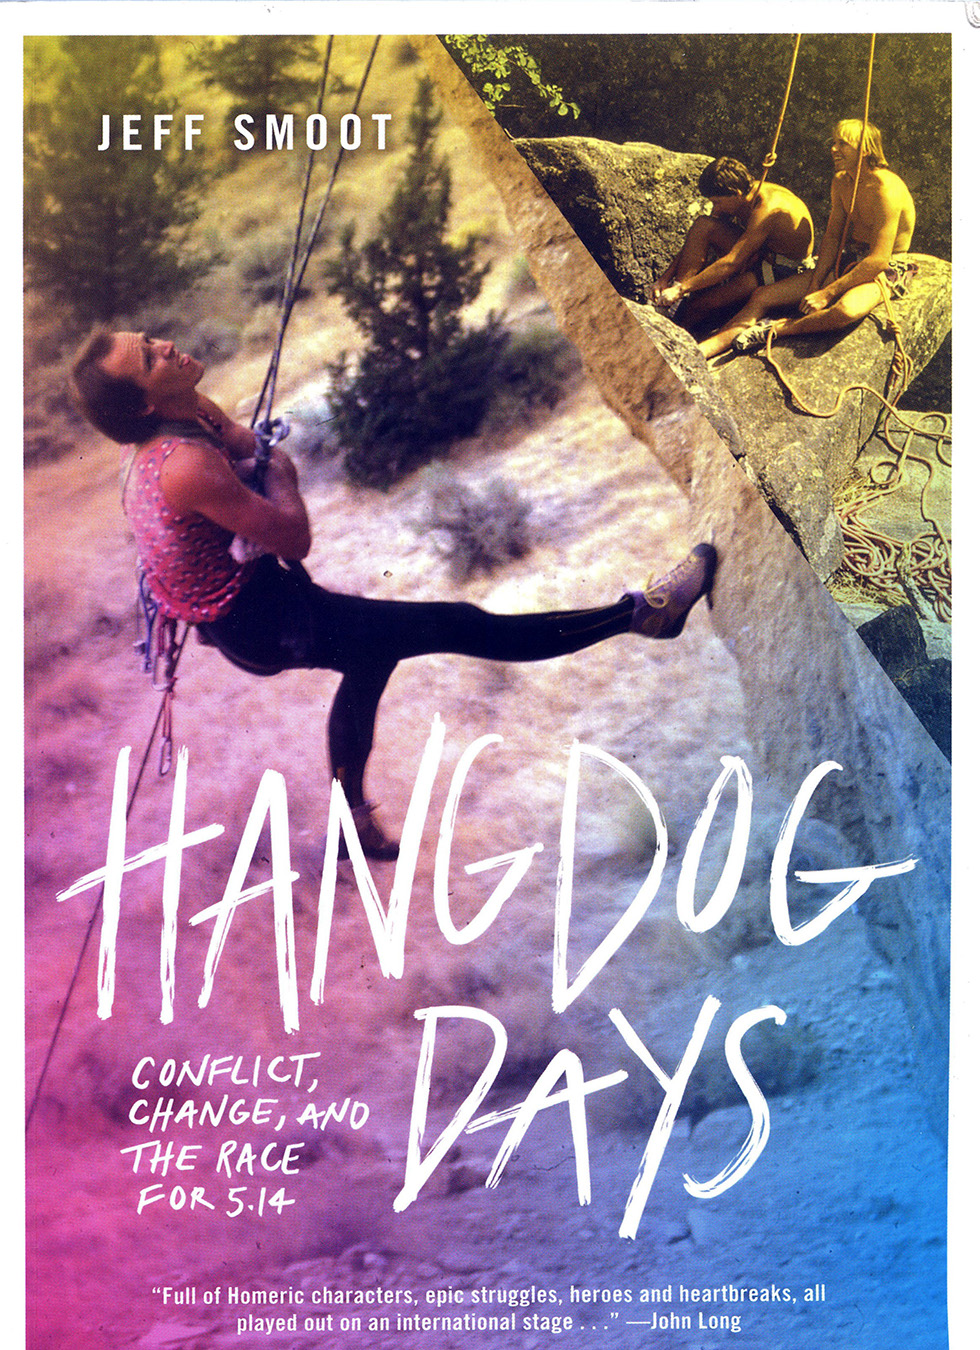 Hang Dog Days